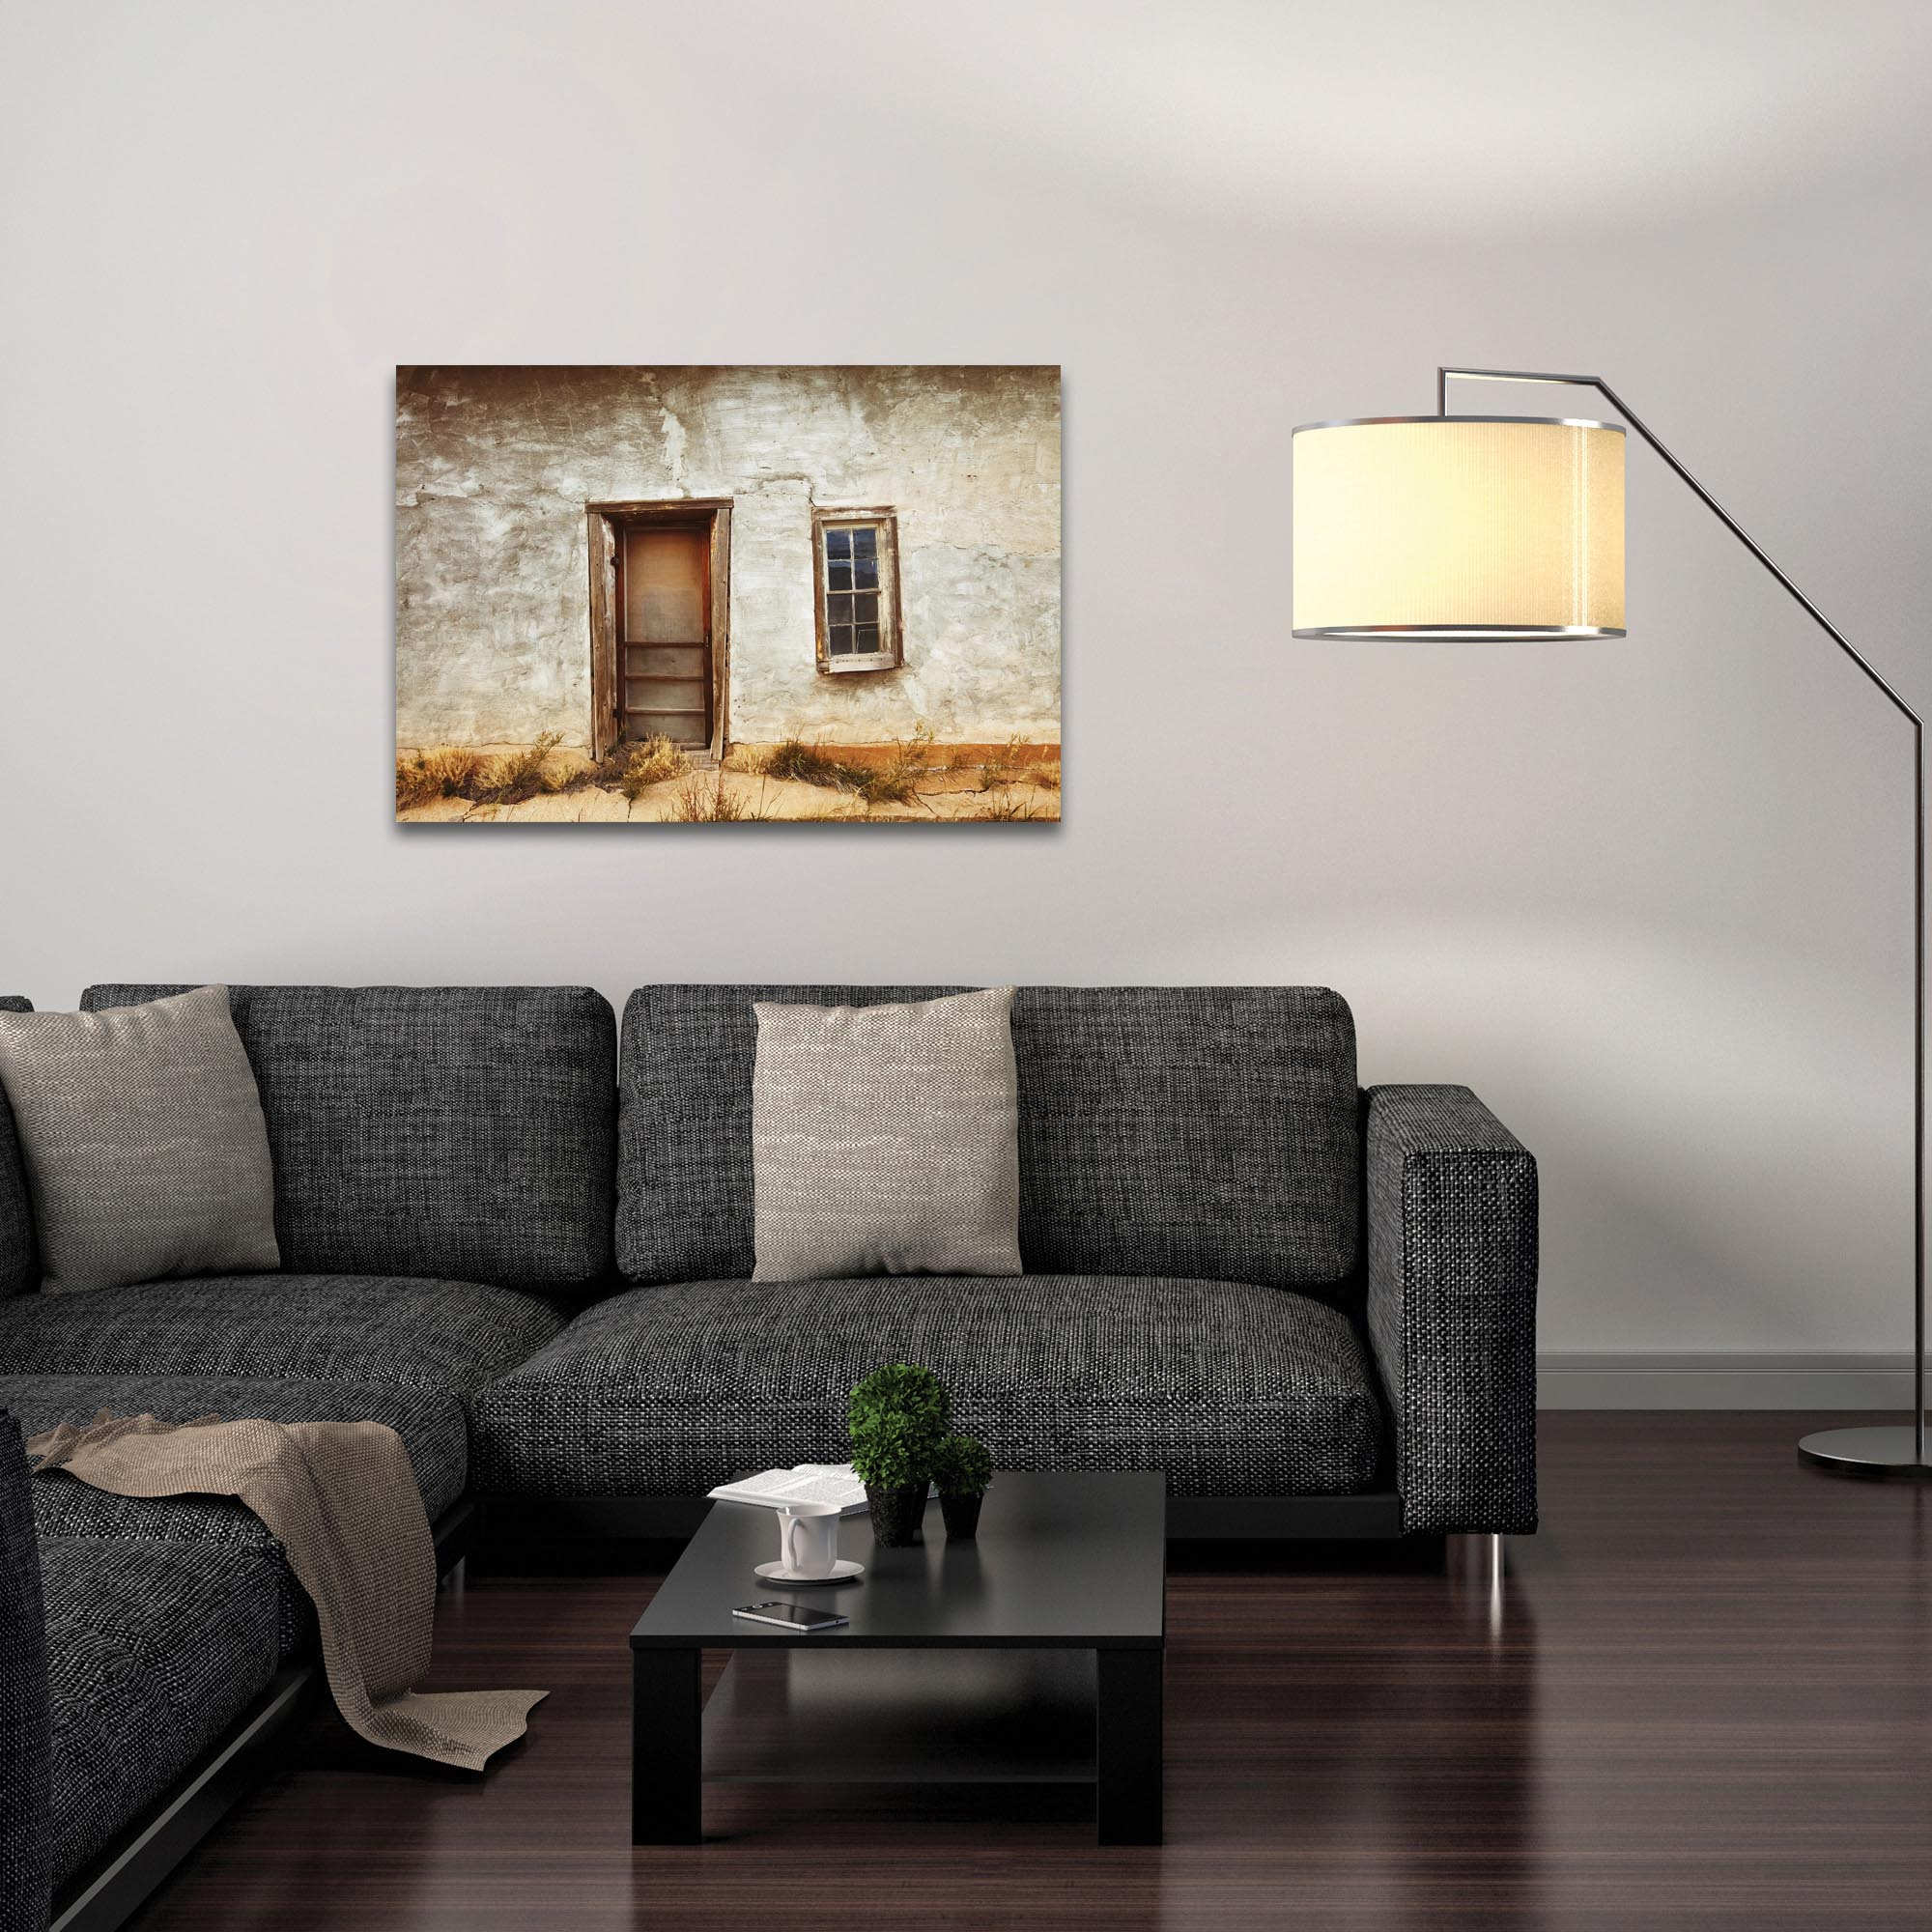 Eclectic Wall Art 'Southern Door' - Architecture Decor on Metal or Plexiglass - Lifestyle View